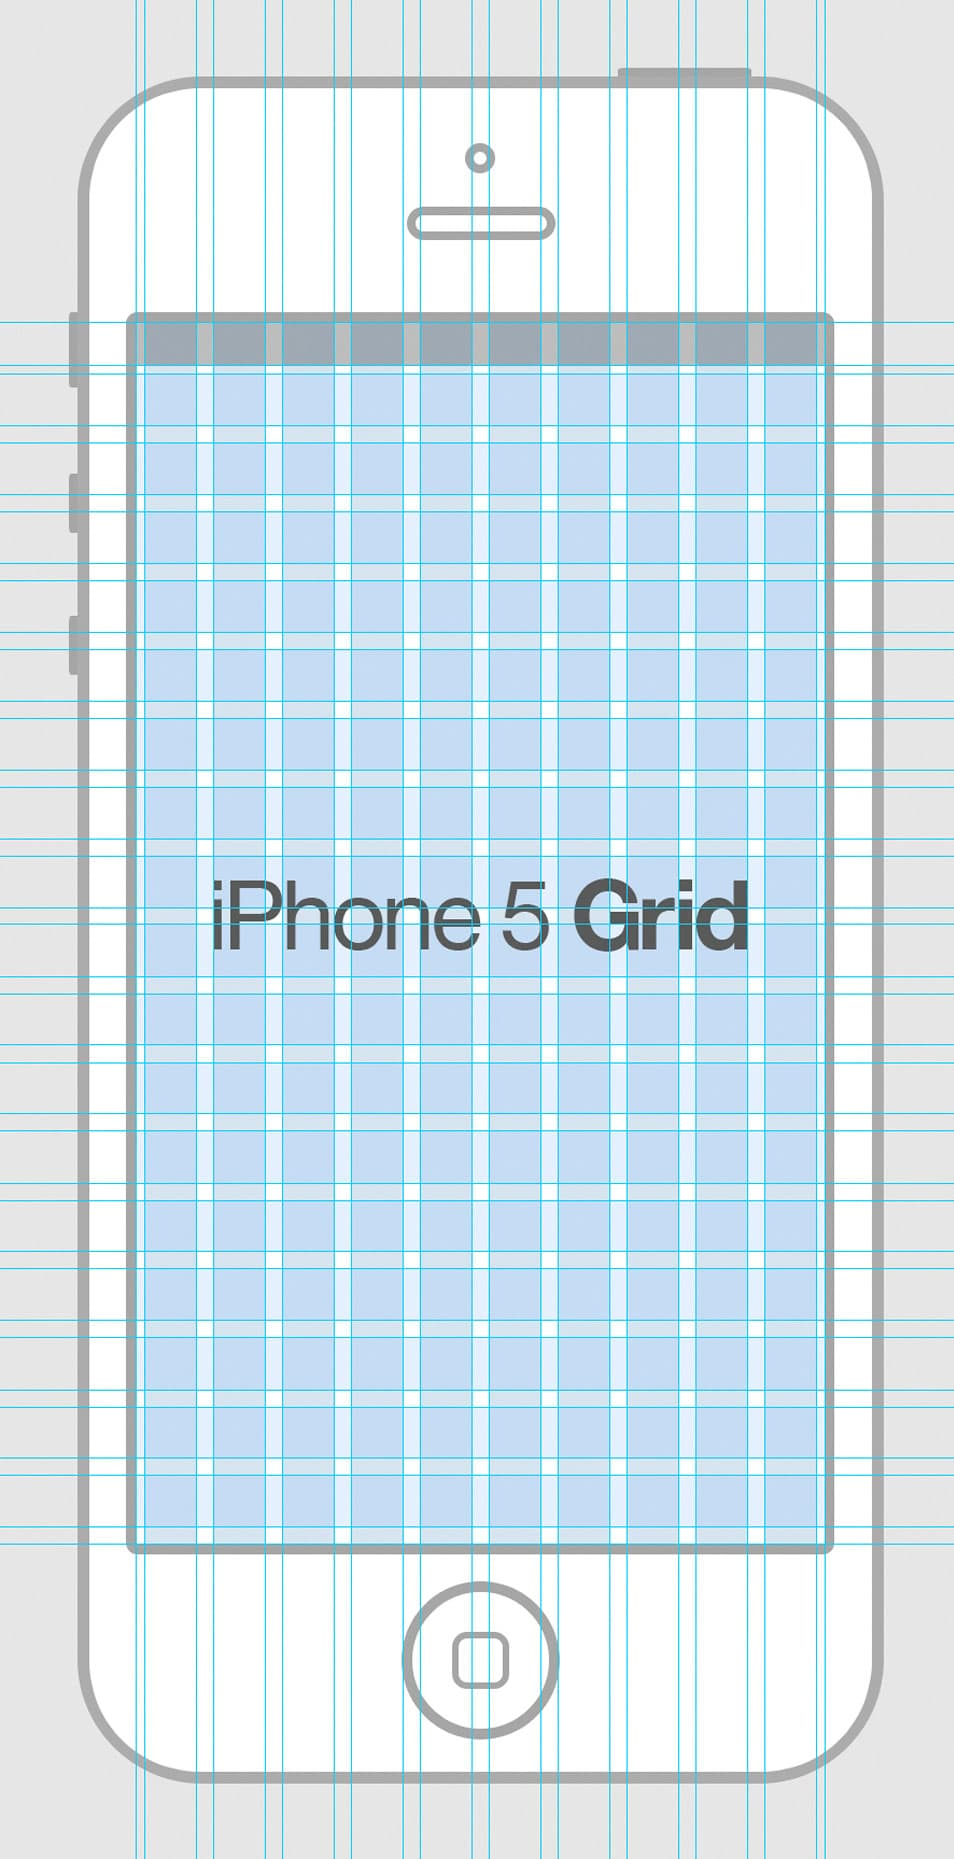 iPhone 5 Grid